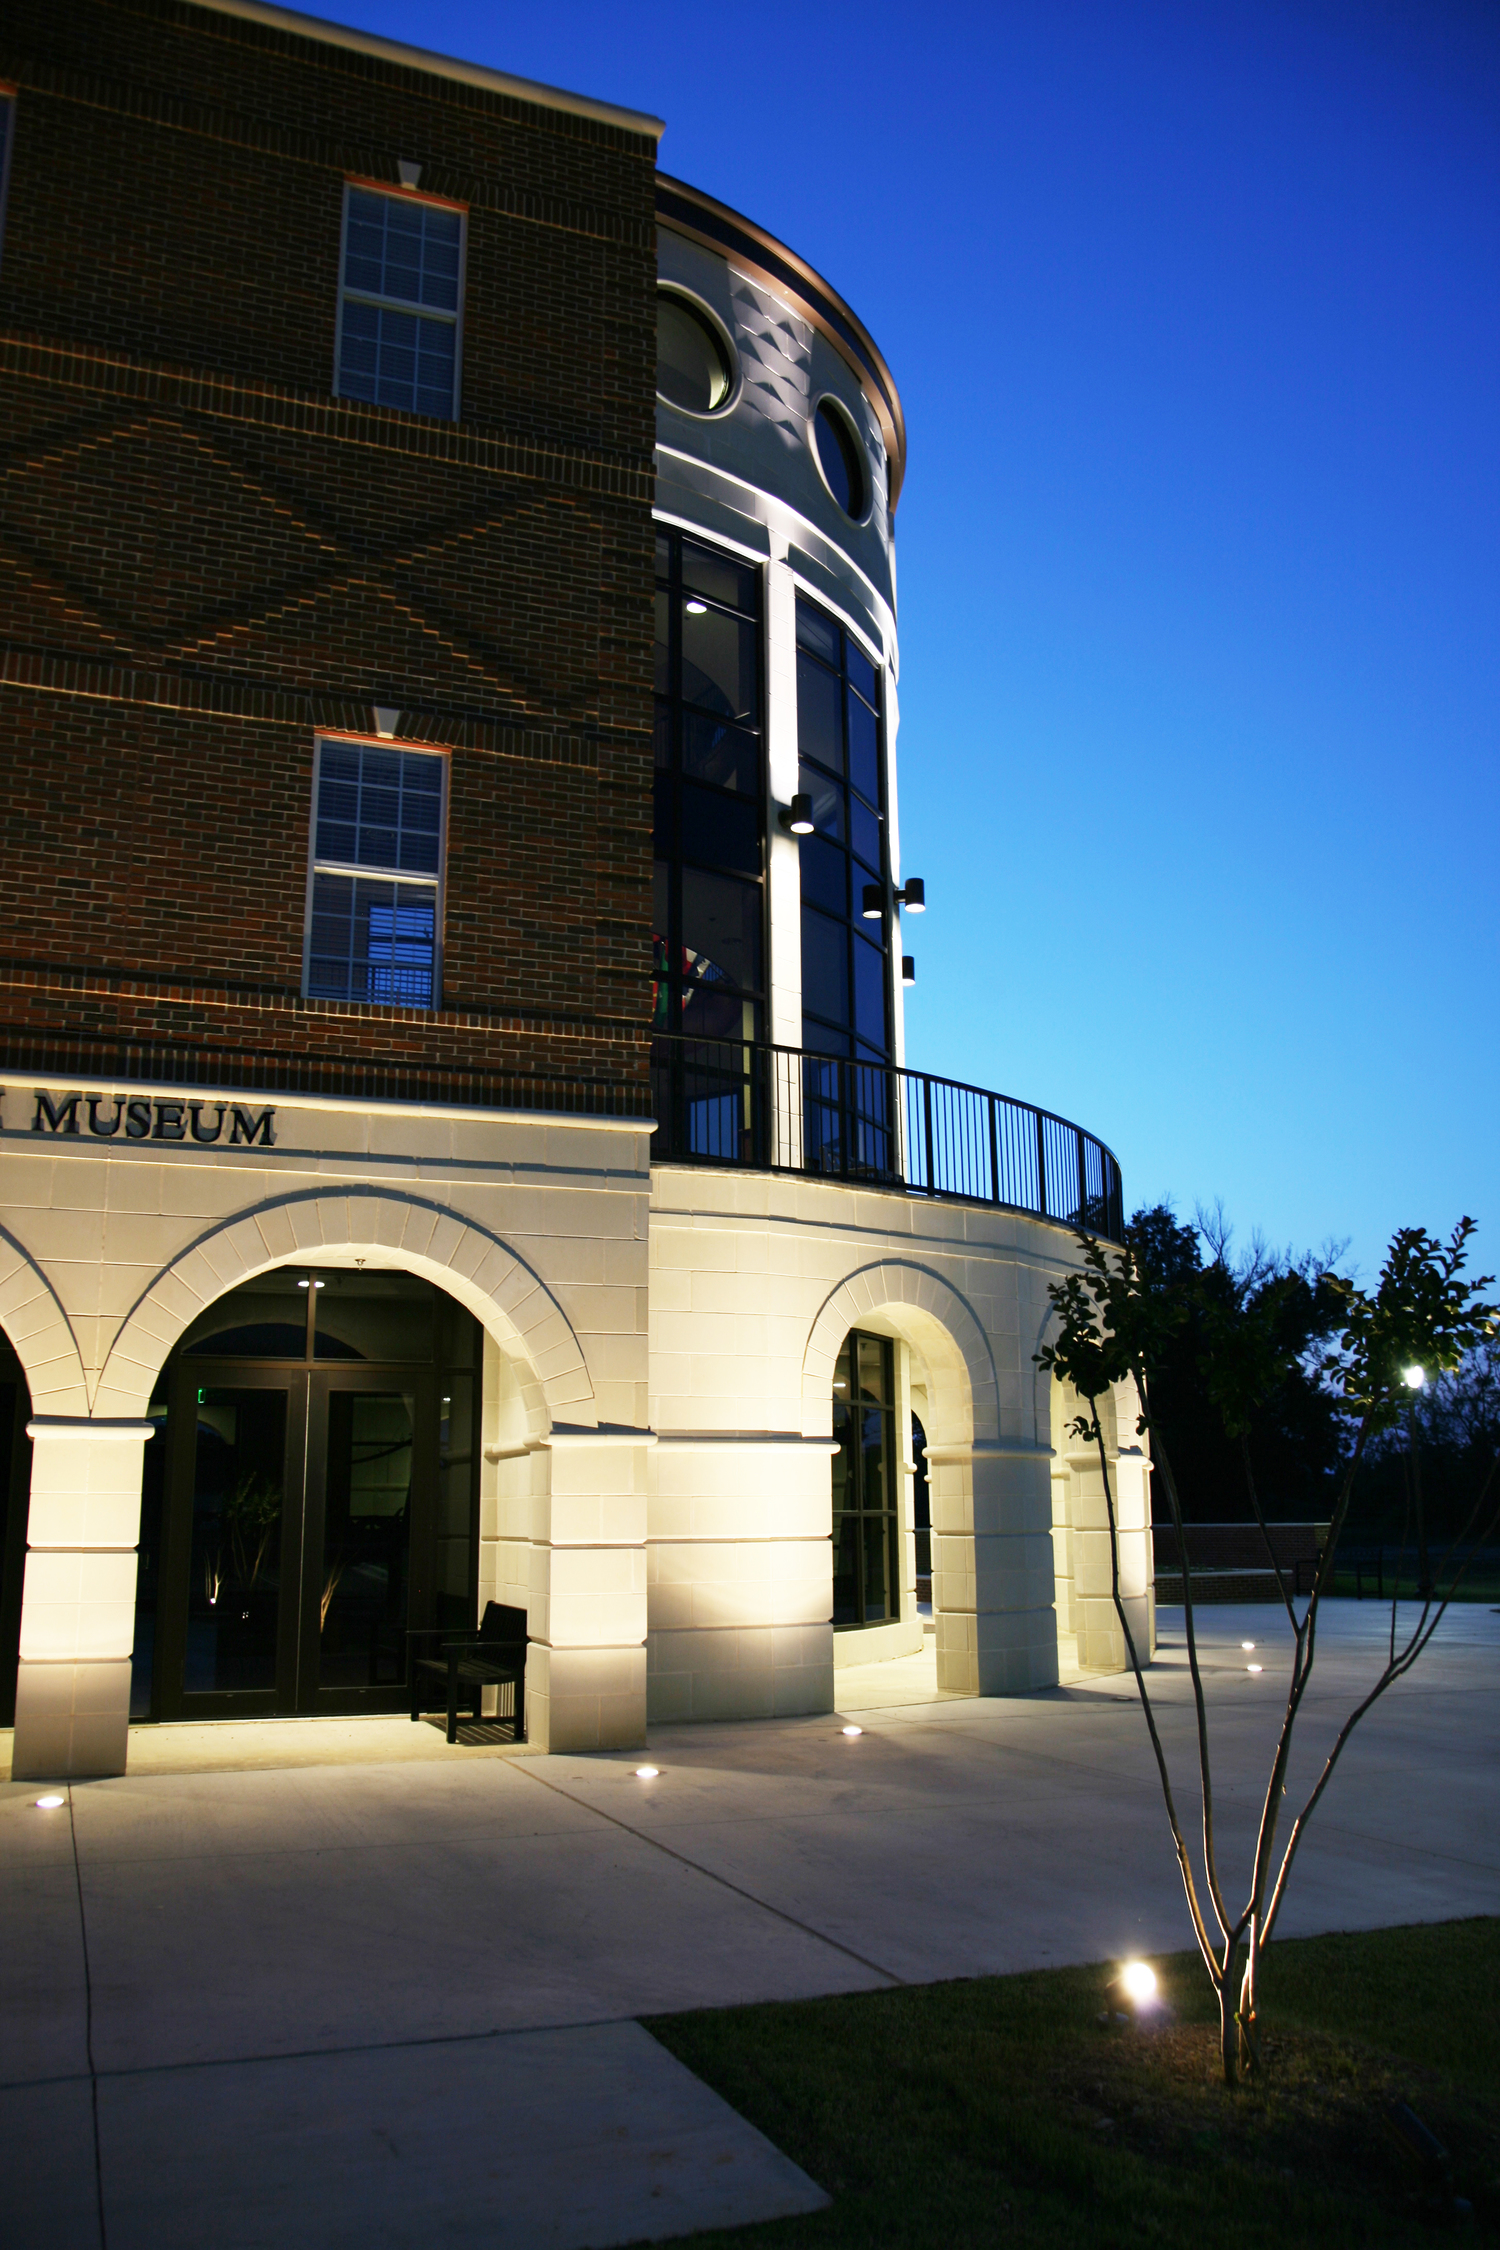 american freedom museum - east texas museum architects - tyler civic architecture - butler architectural group - mike butler